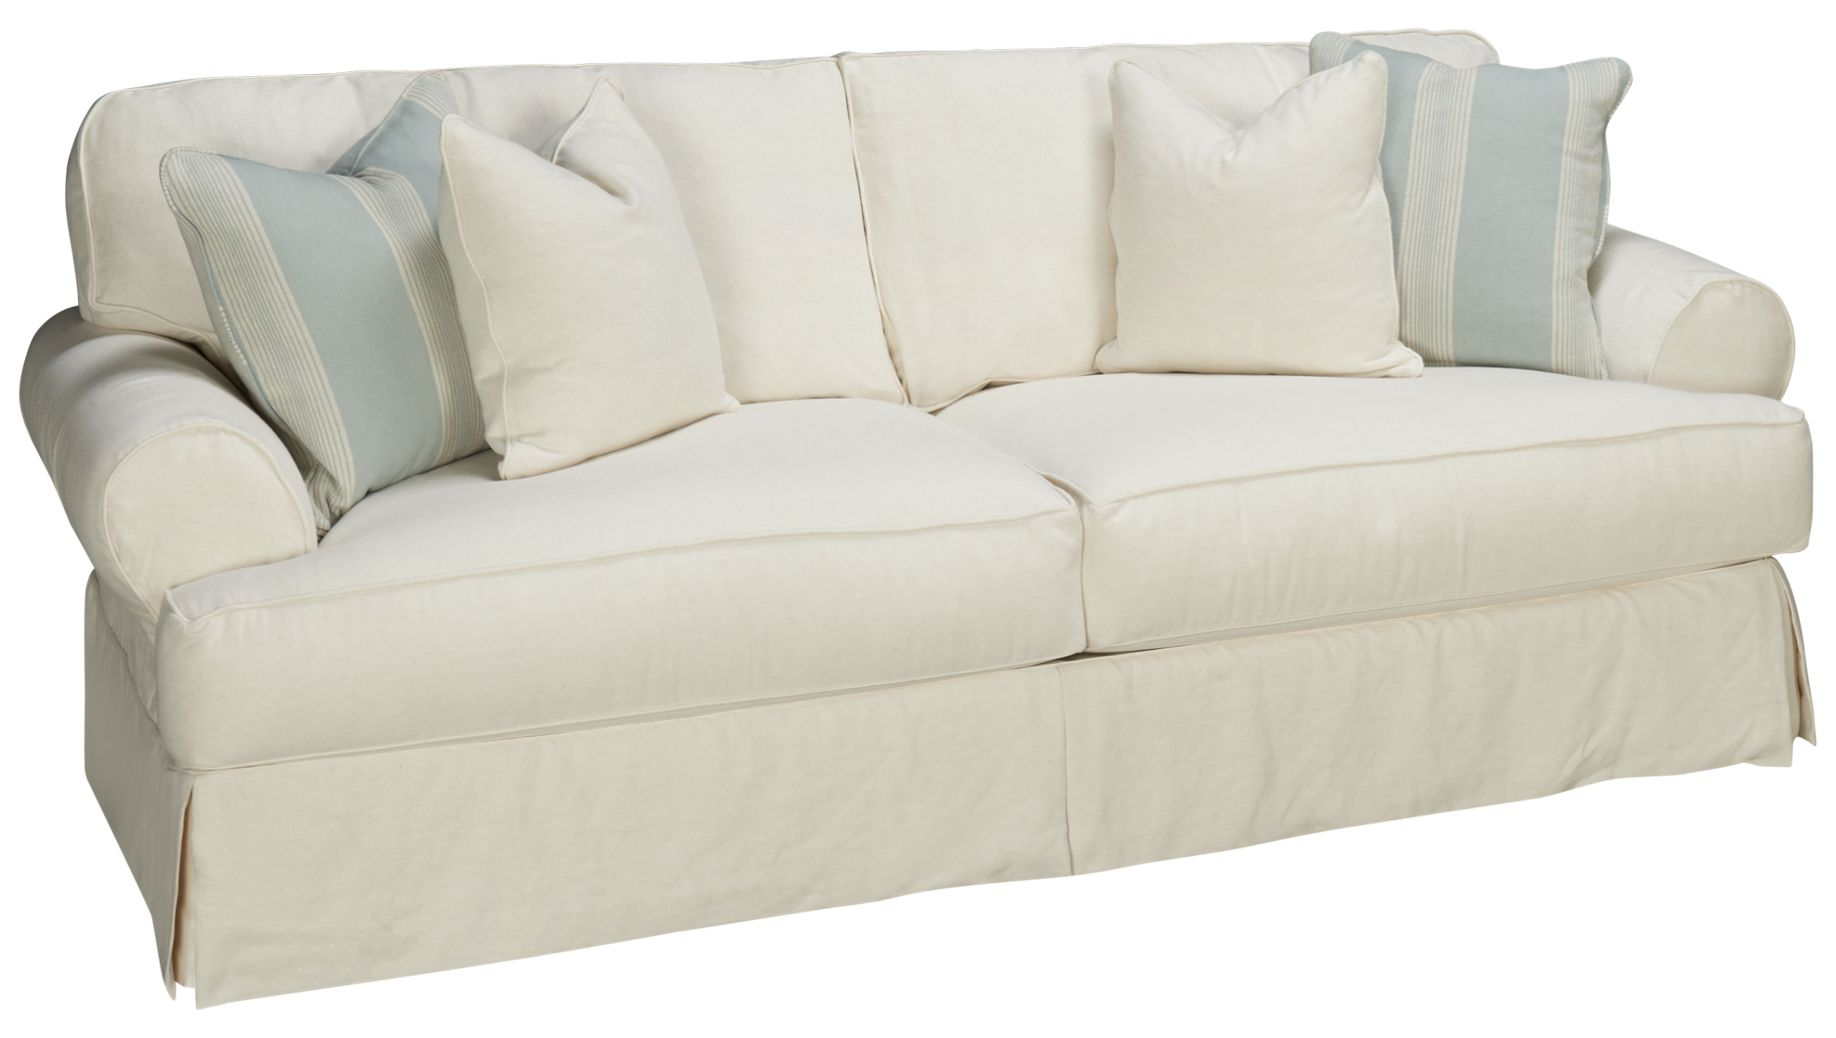 Rowe sleeper sofa slipcovers sofa menzilperde net Sleeper sofa covers